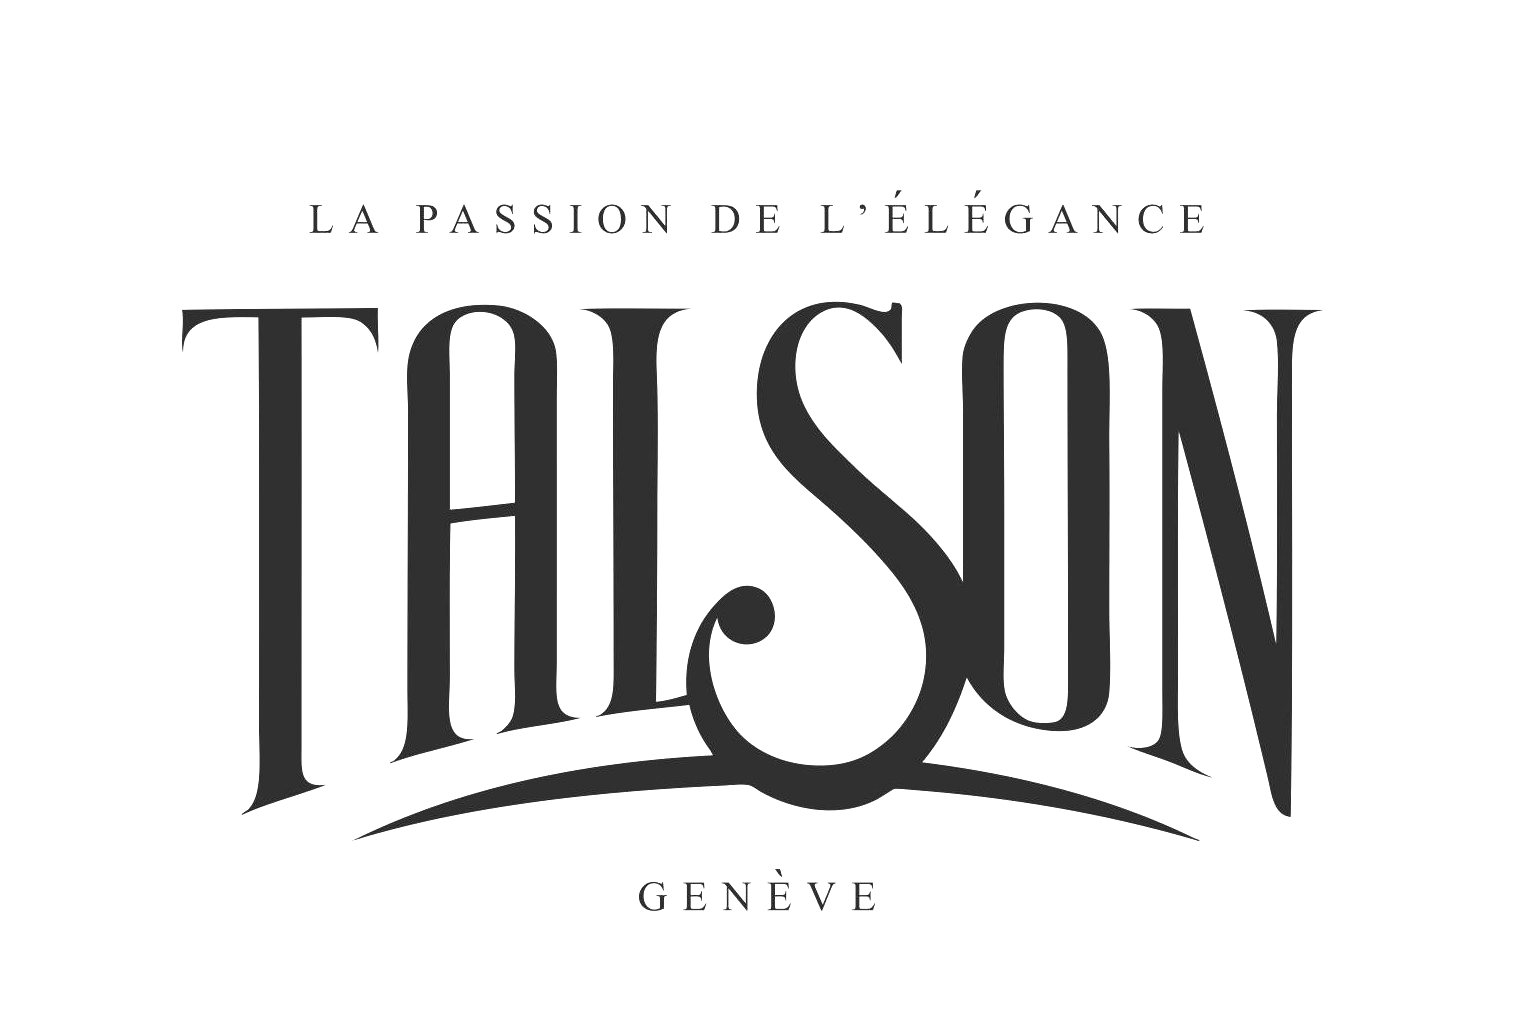 TALSON GENEVE